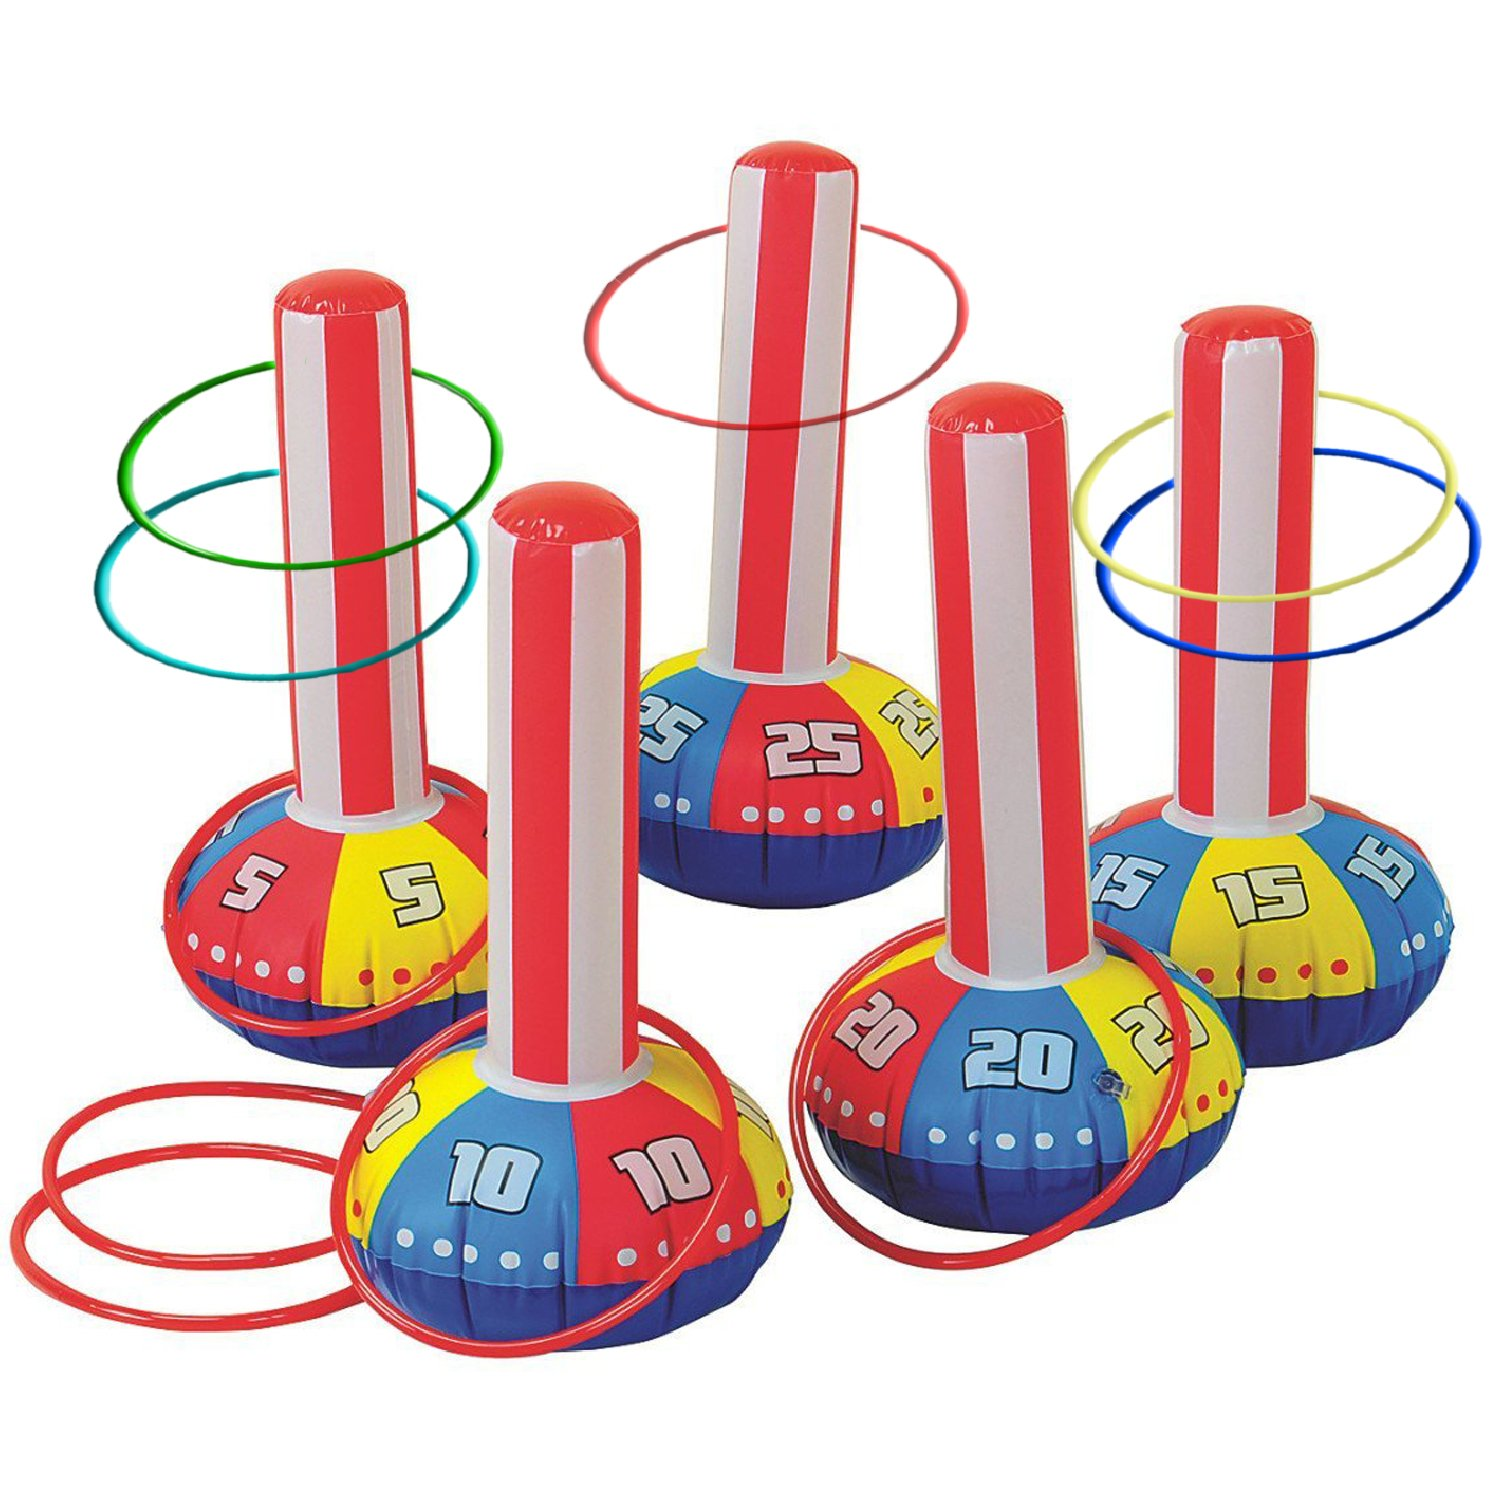 "Gamie Inflatable Ring Toss Game by Super Fun Outdoor Games for Kids & Adults - 5 15"" Tall Inflate Bases, 5 Flexible Rings and 5 Sturdy Rings - Best Birthday Party Activity for Boys & Girls"